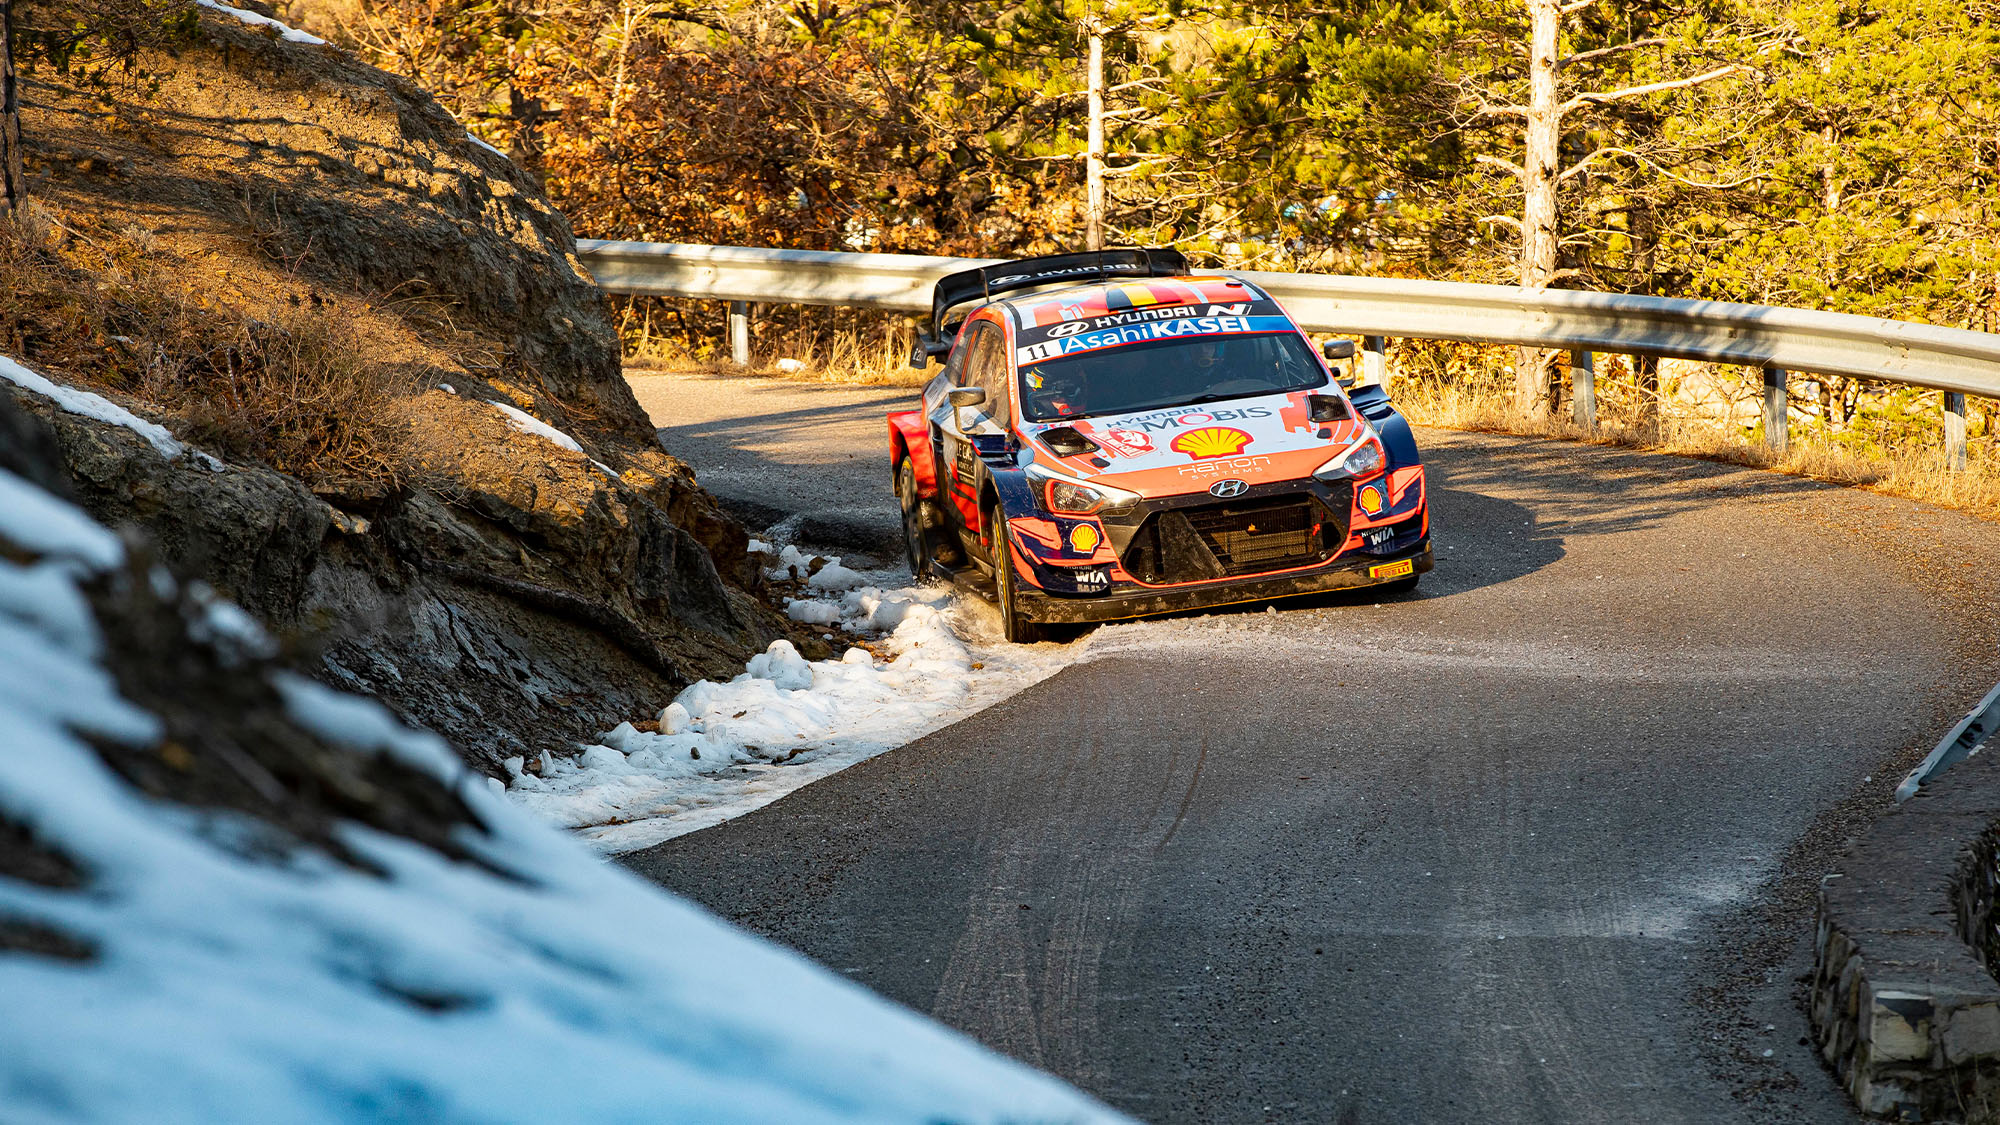 Thierry Neuville in the 2021 Monte Carlo Rally